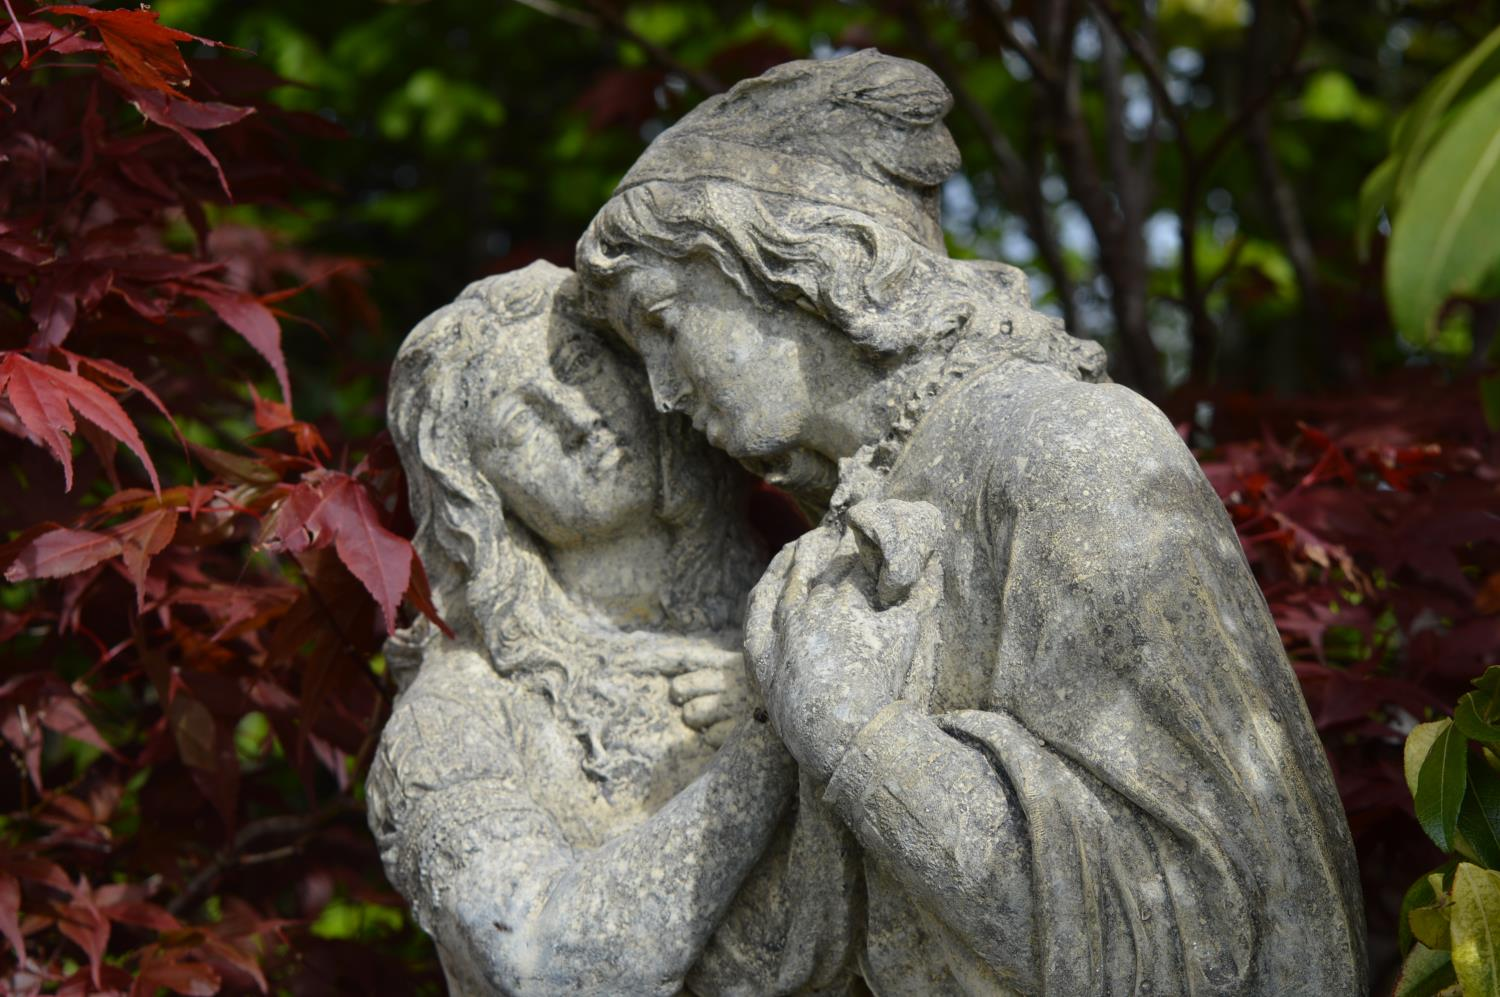 Stone sculpture of Romeo and Juliet - Image 2 of 4